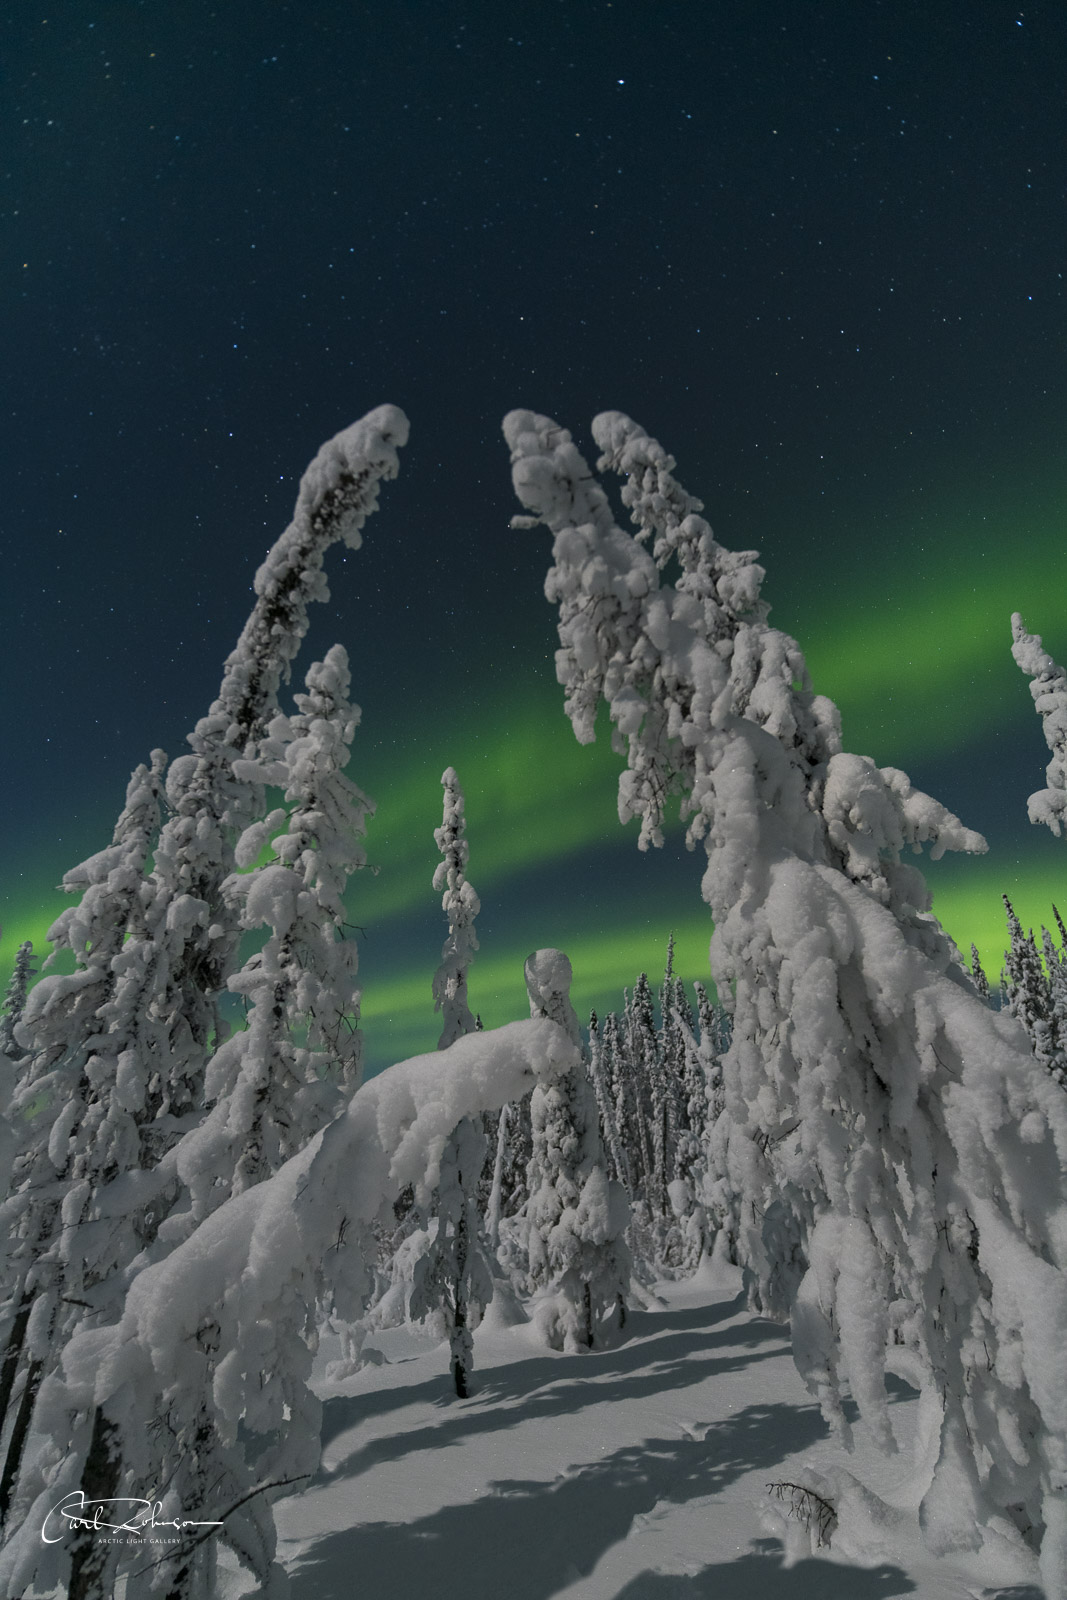 The aurora borealis soars behind a cluster of snowy trees that look like something from a Dr. Suess story.